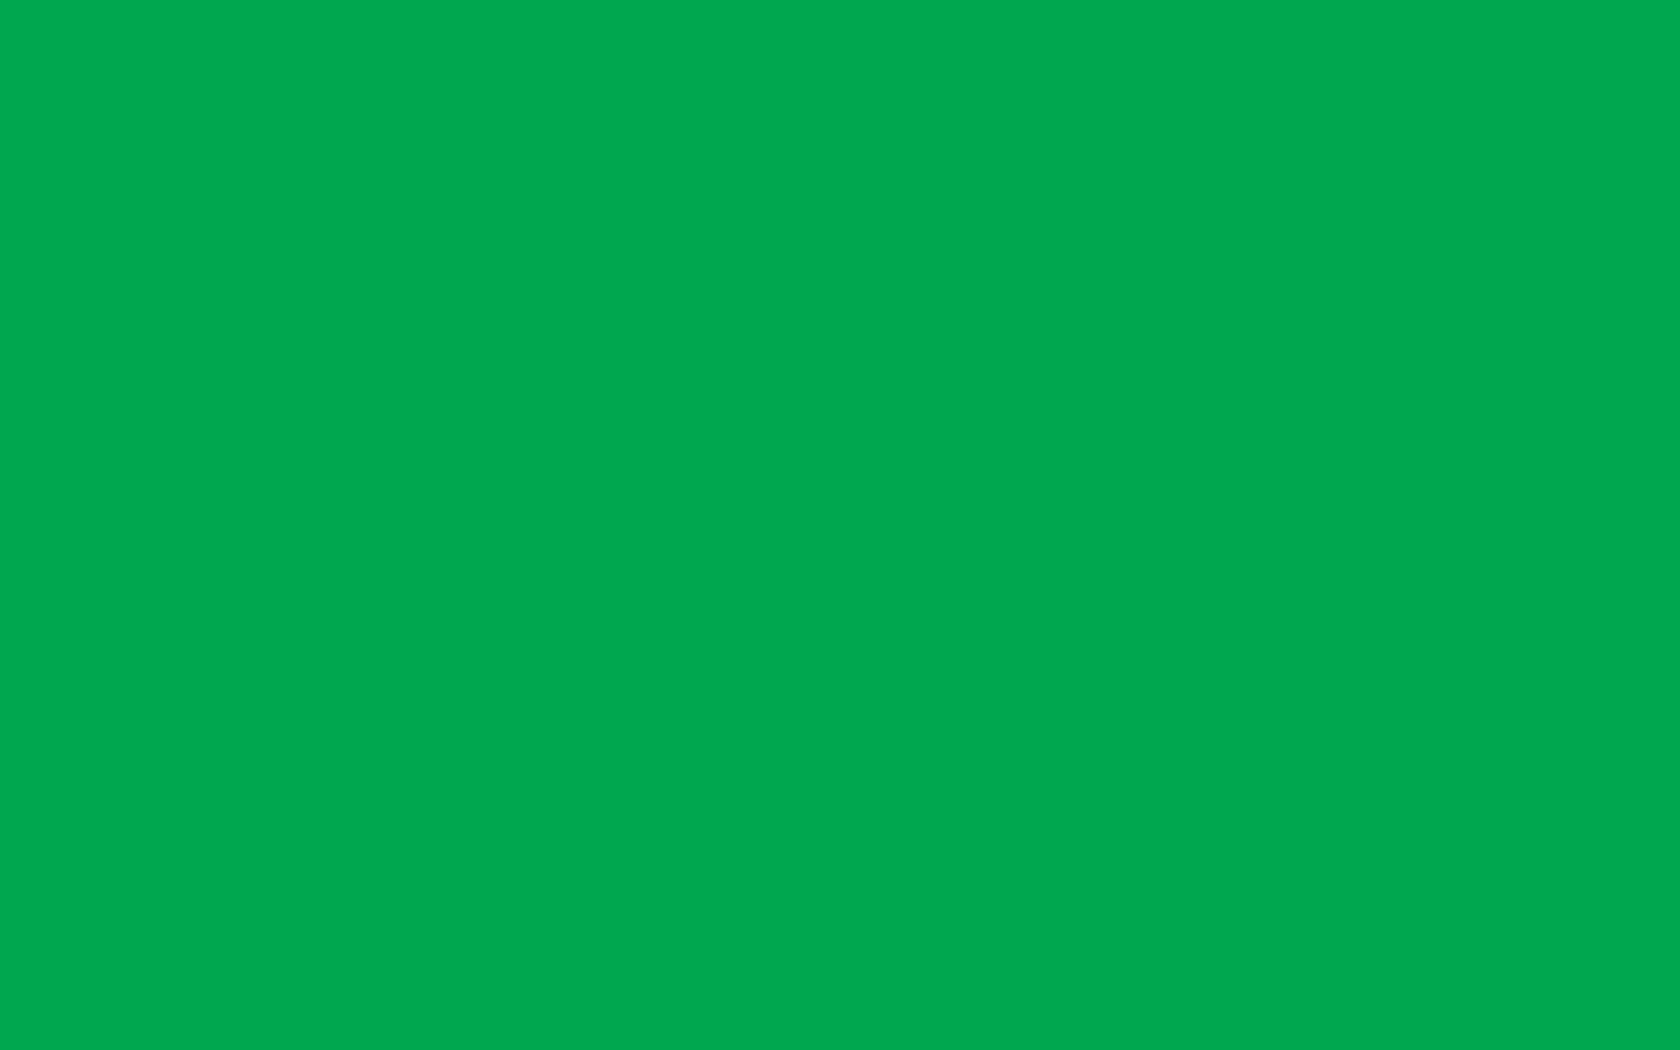 1680x1050 Green Pigment Solid Color Background